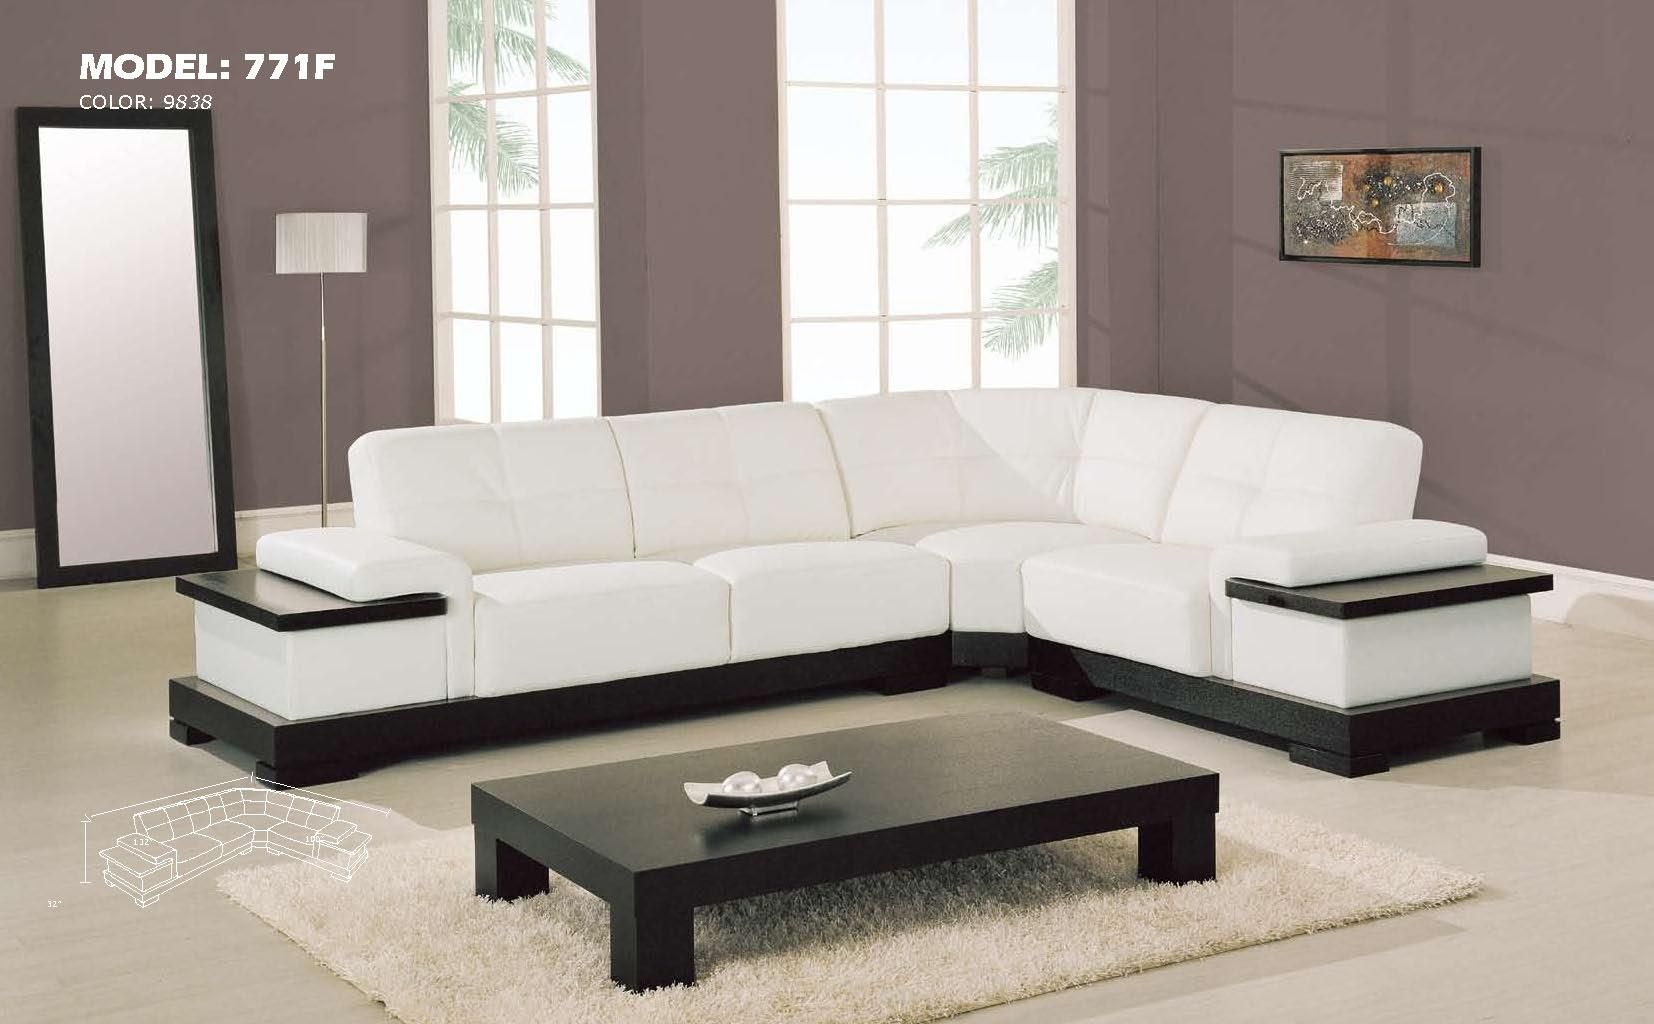 Contemporary Sectional L Shaped Sofa Design Ideas for